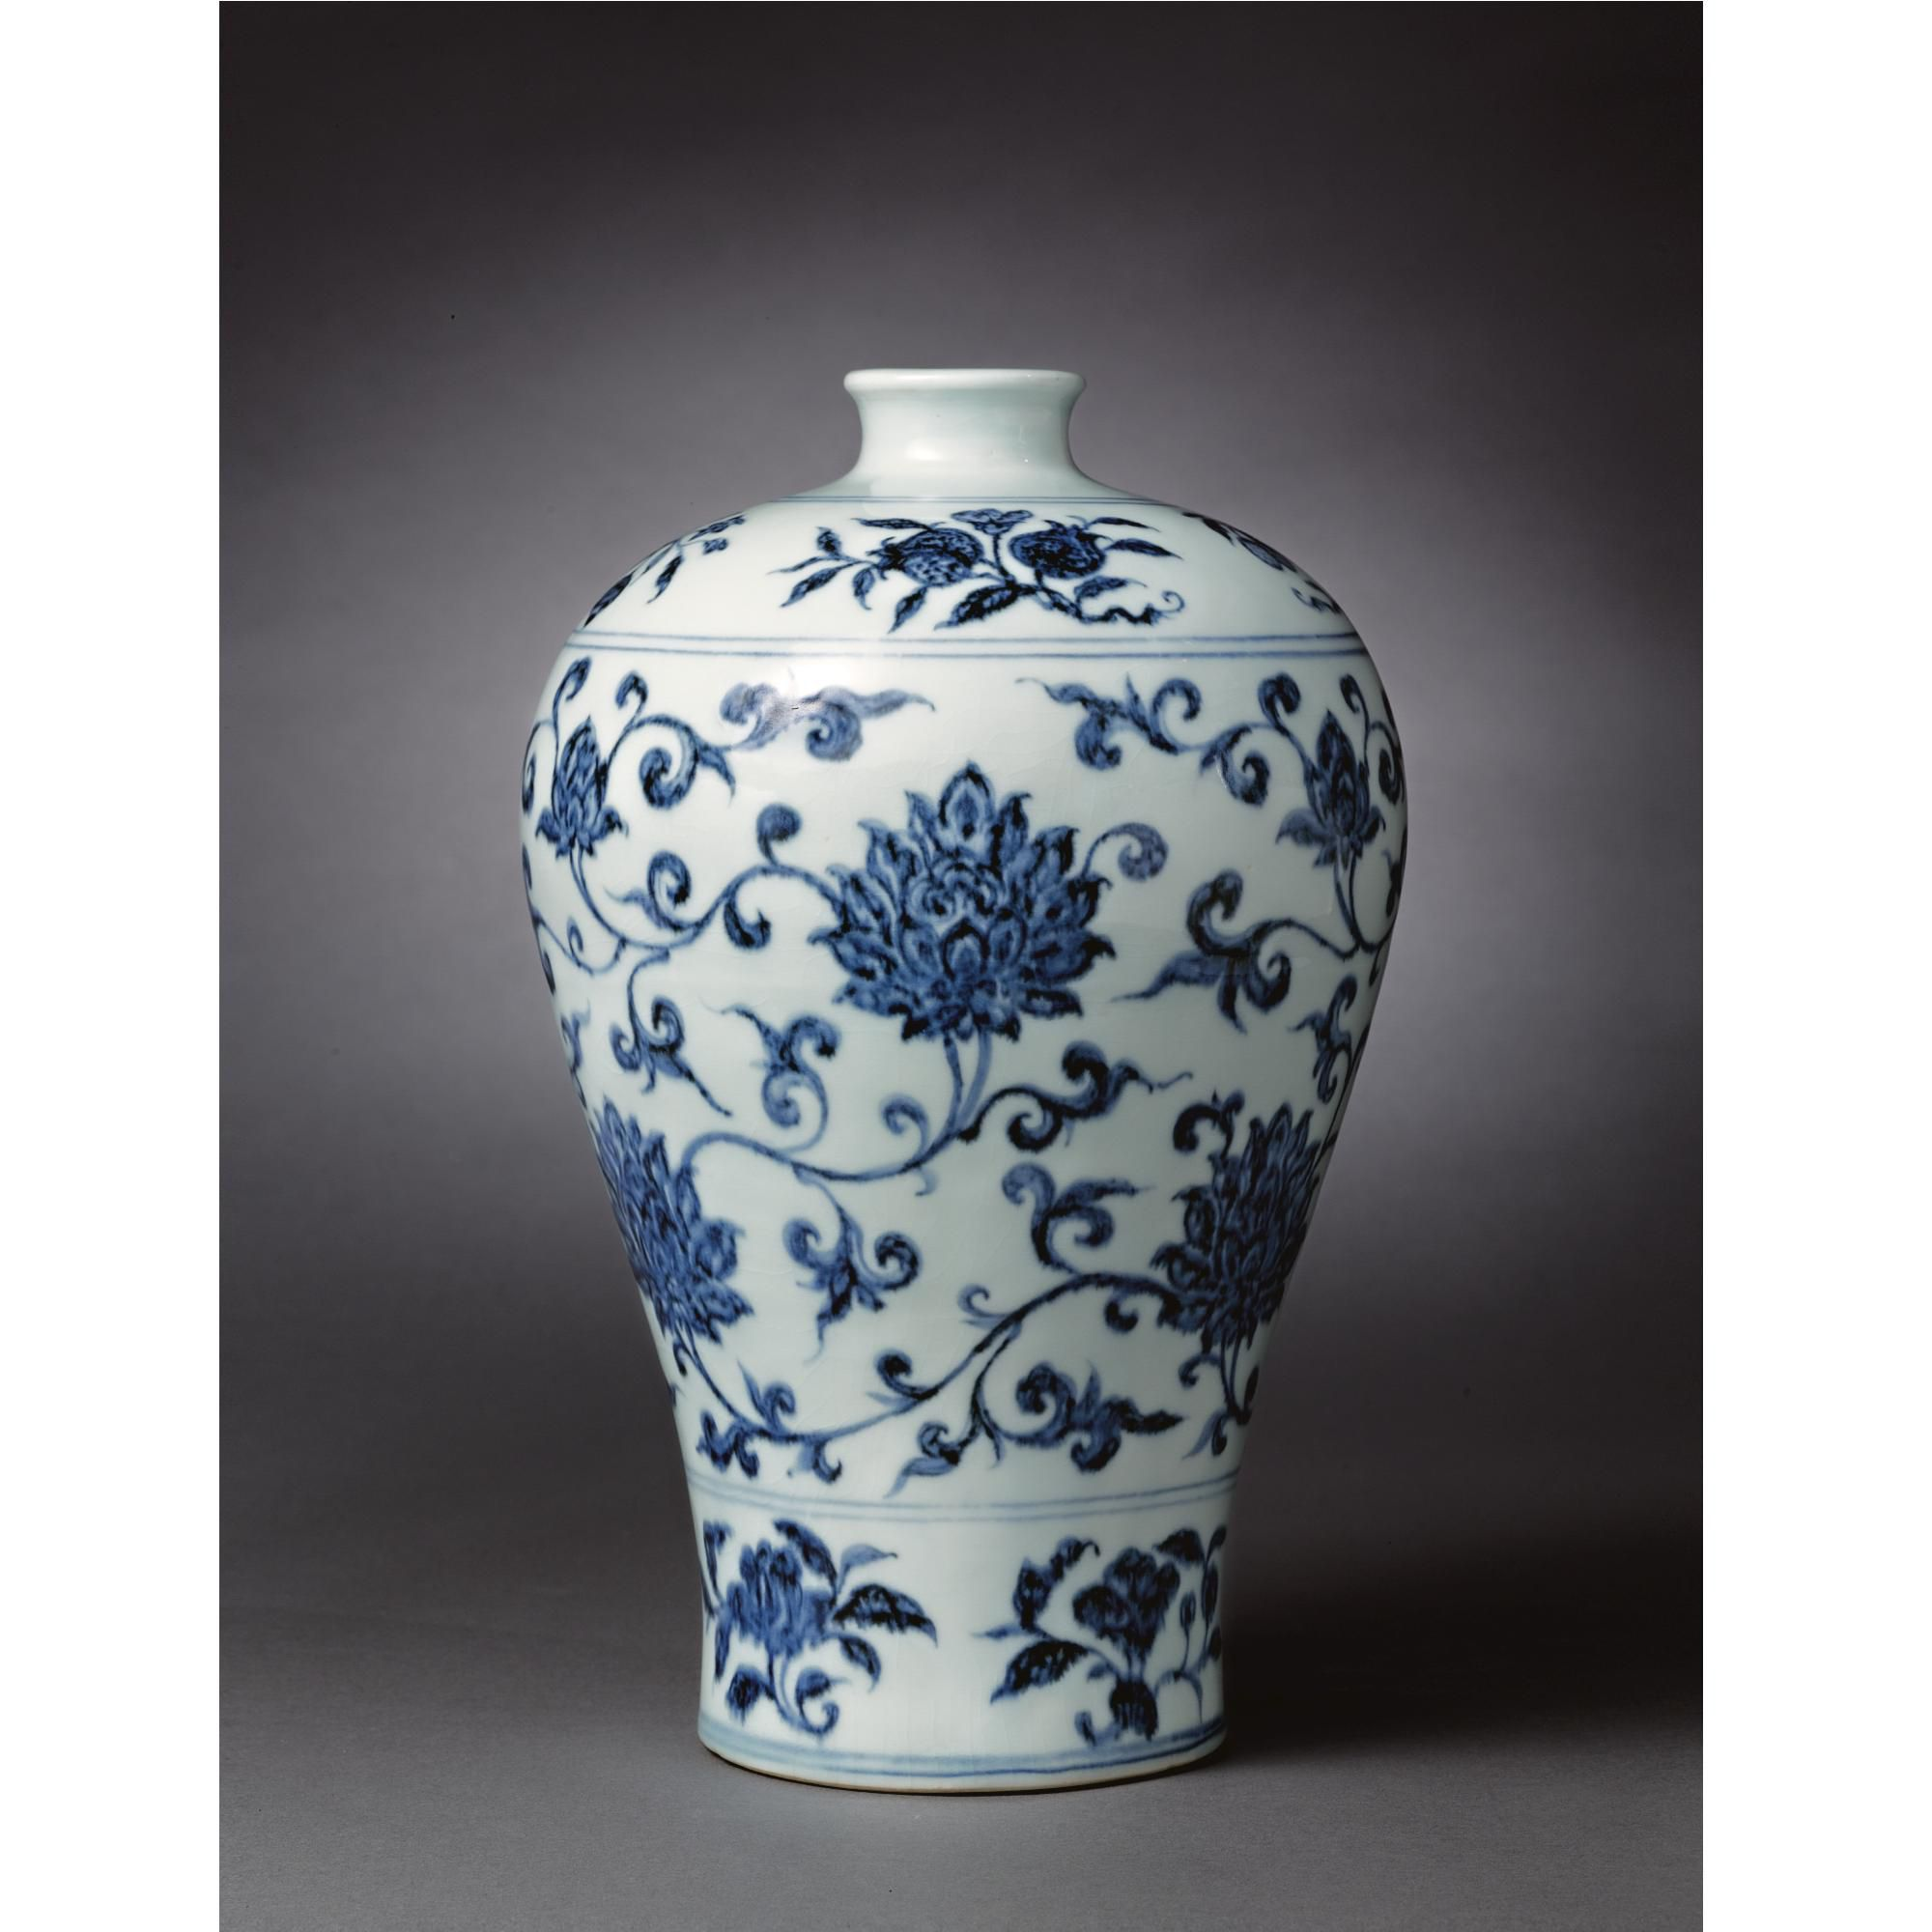 A superb and rare early ming blue and white vase meiping ming a superb and rare early ming blue and white vase meiping ming reviewsmspy